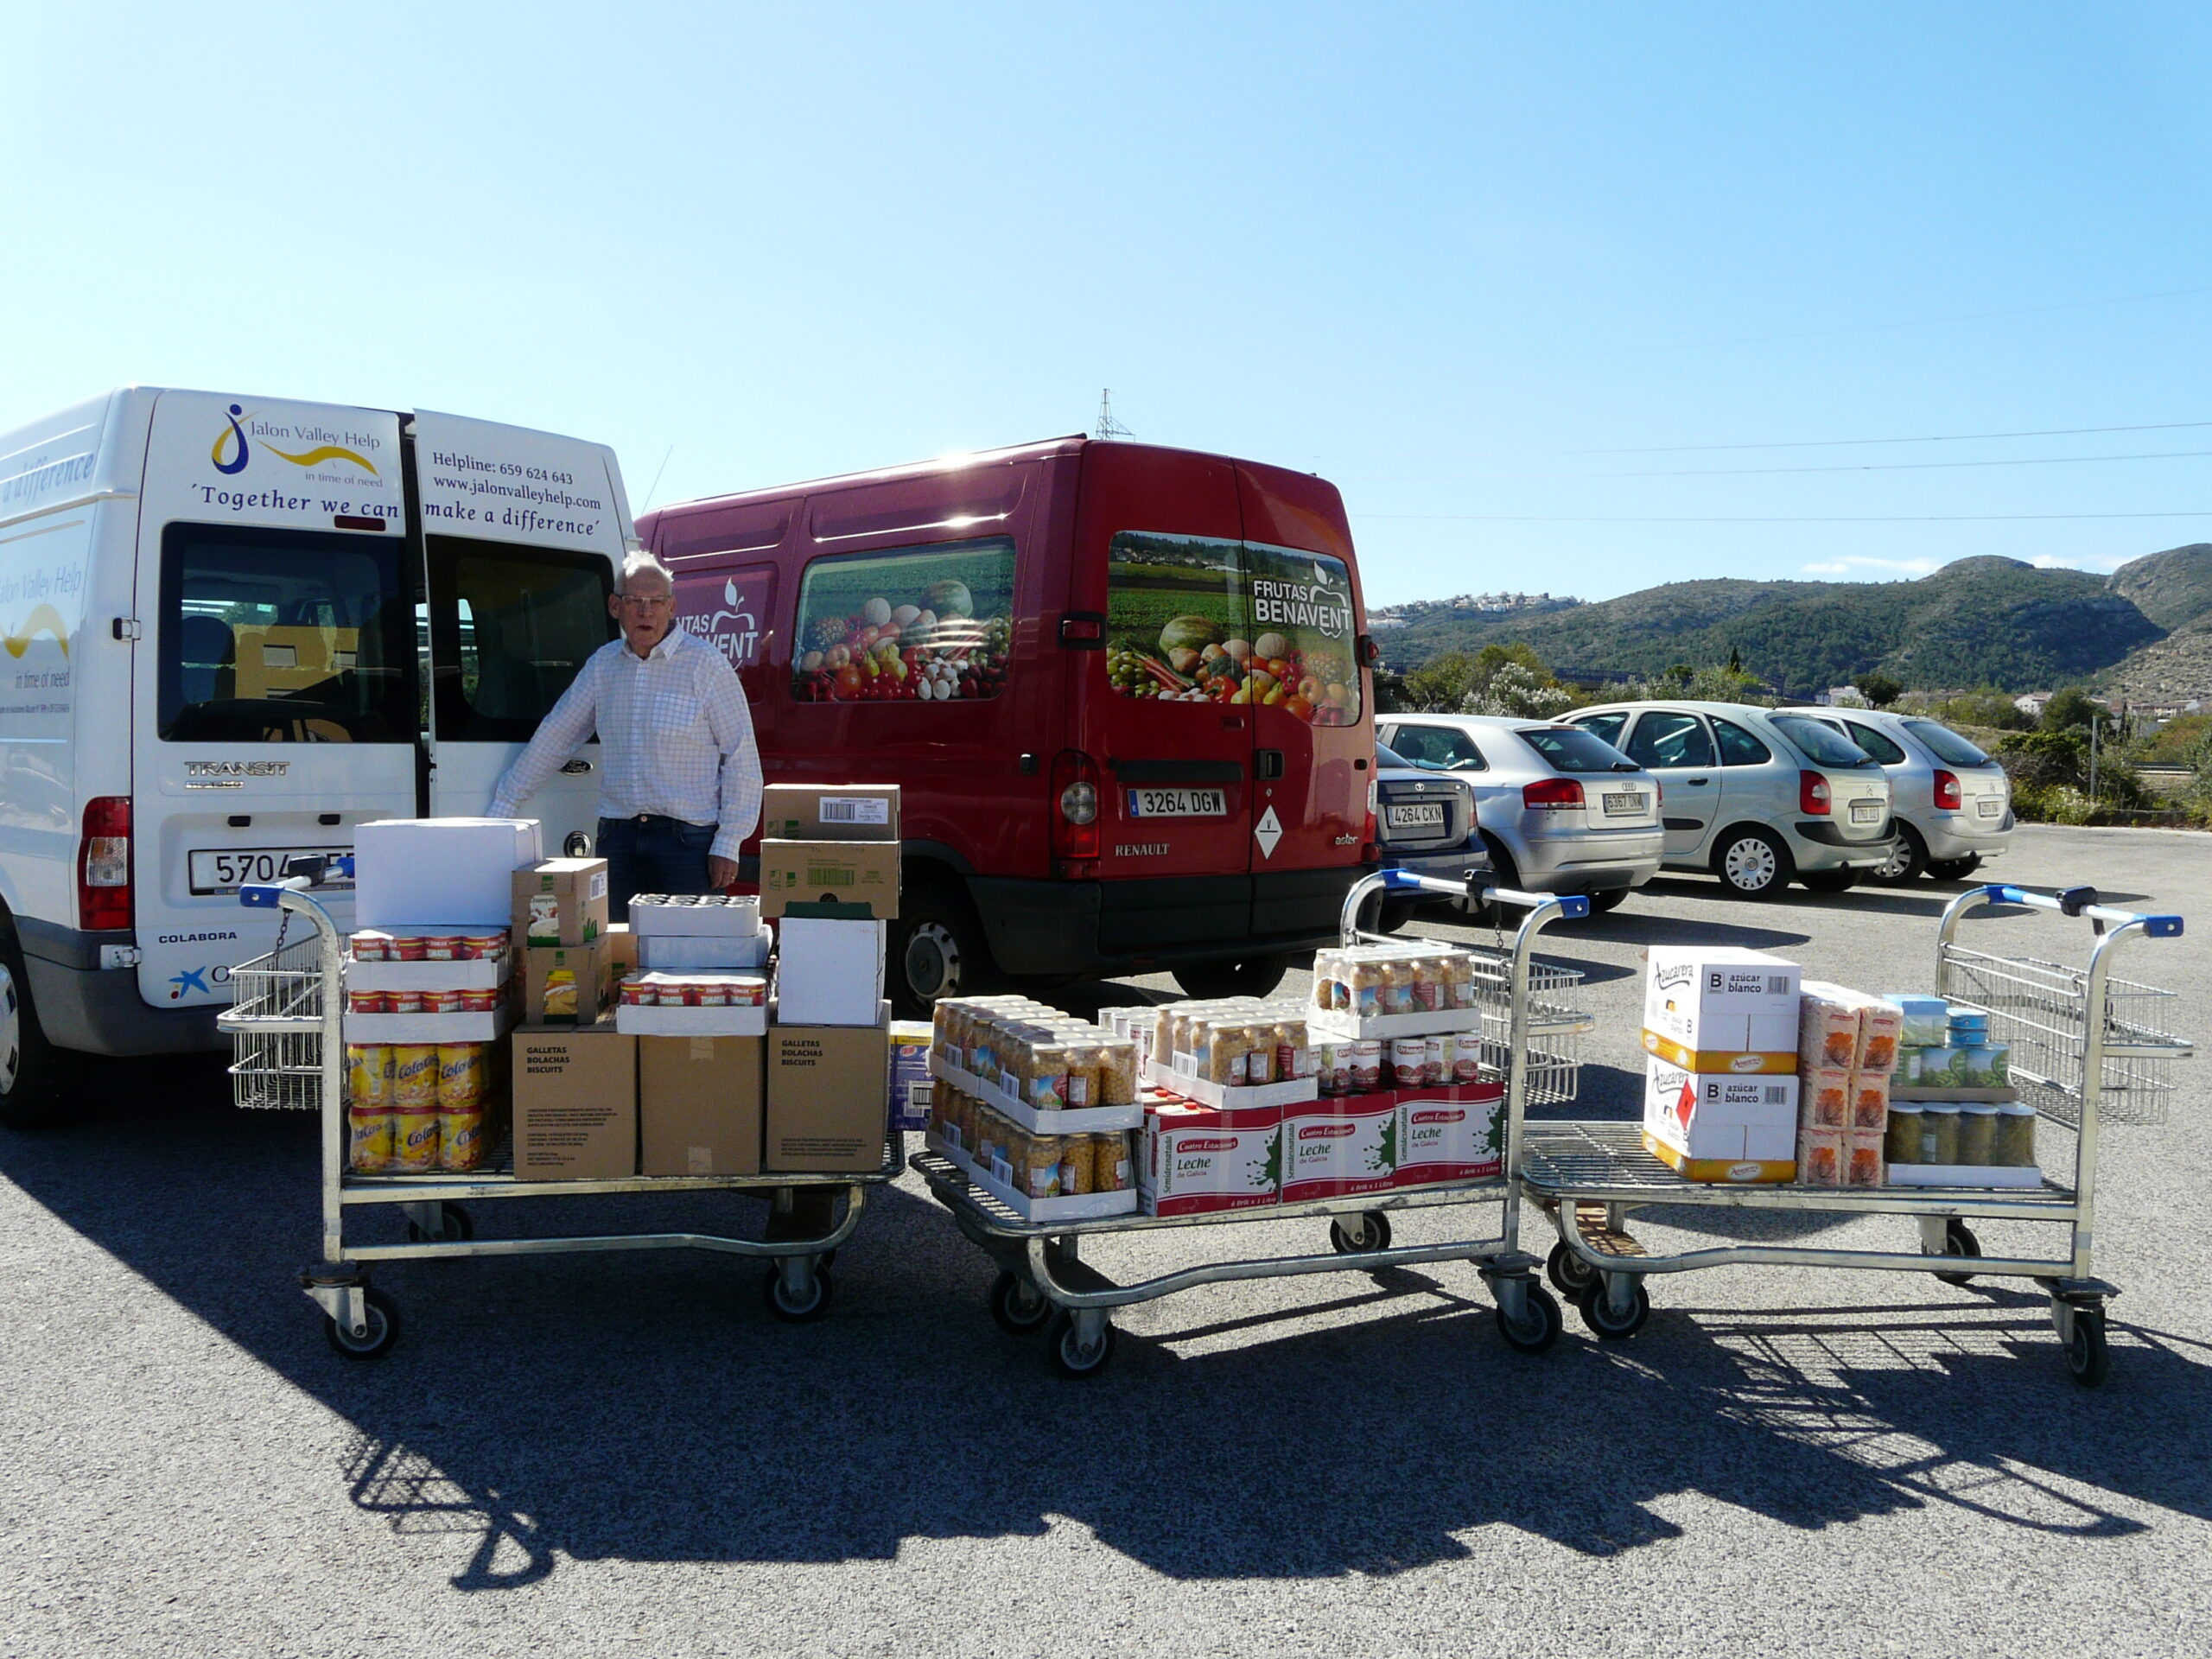 Food for the needy either through CARITAS or direct to individuals.